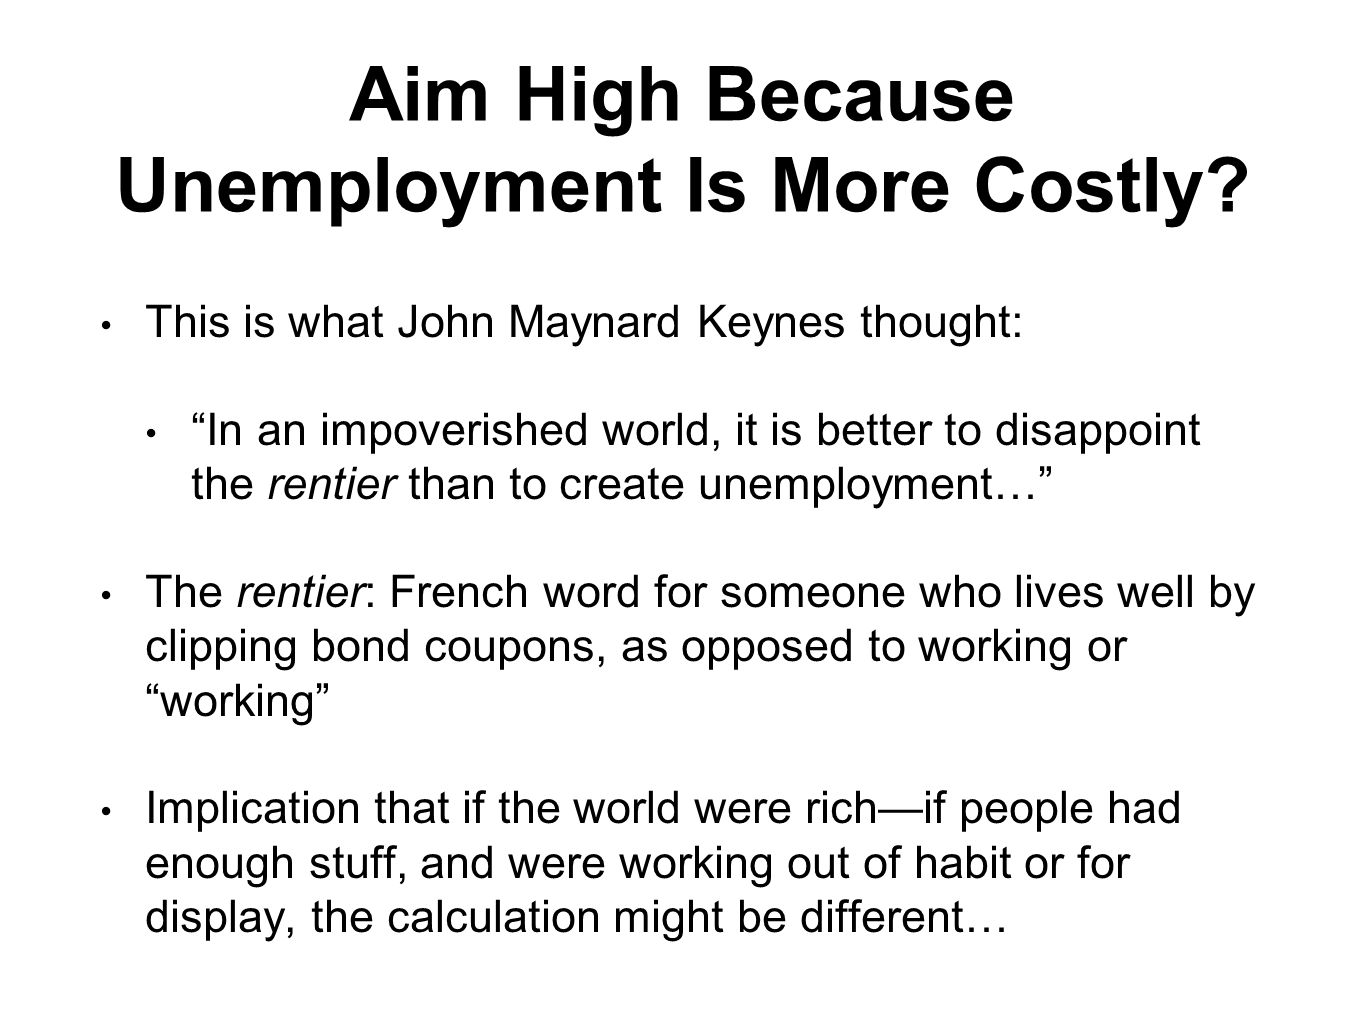 Aim High Because Unemployment Is More Costly.